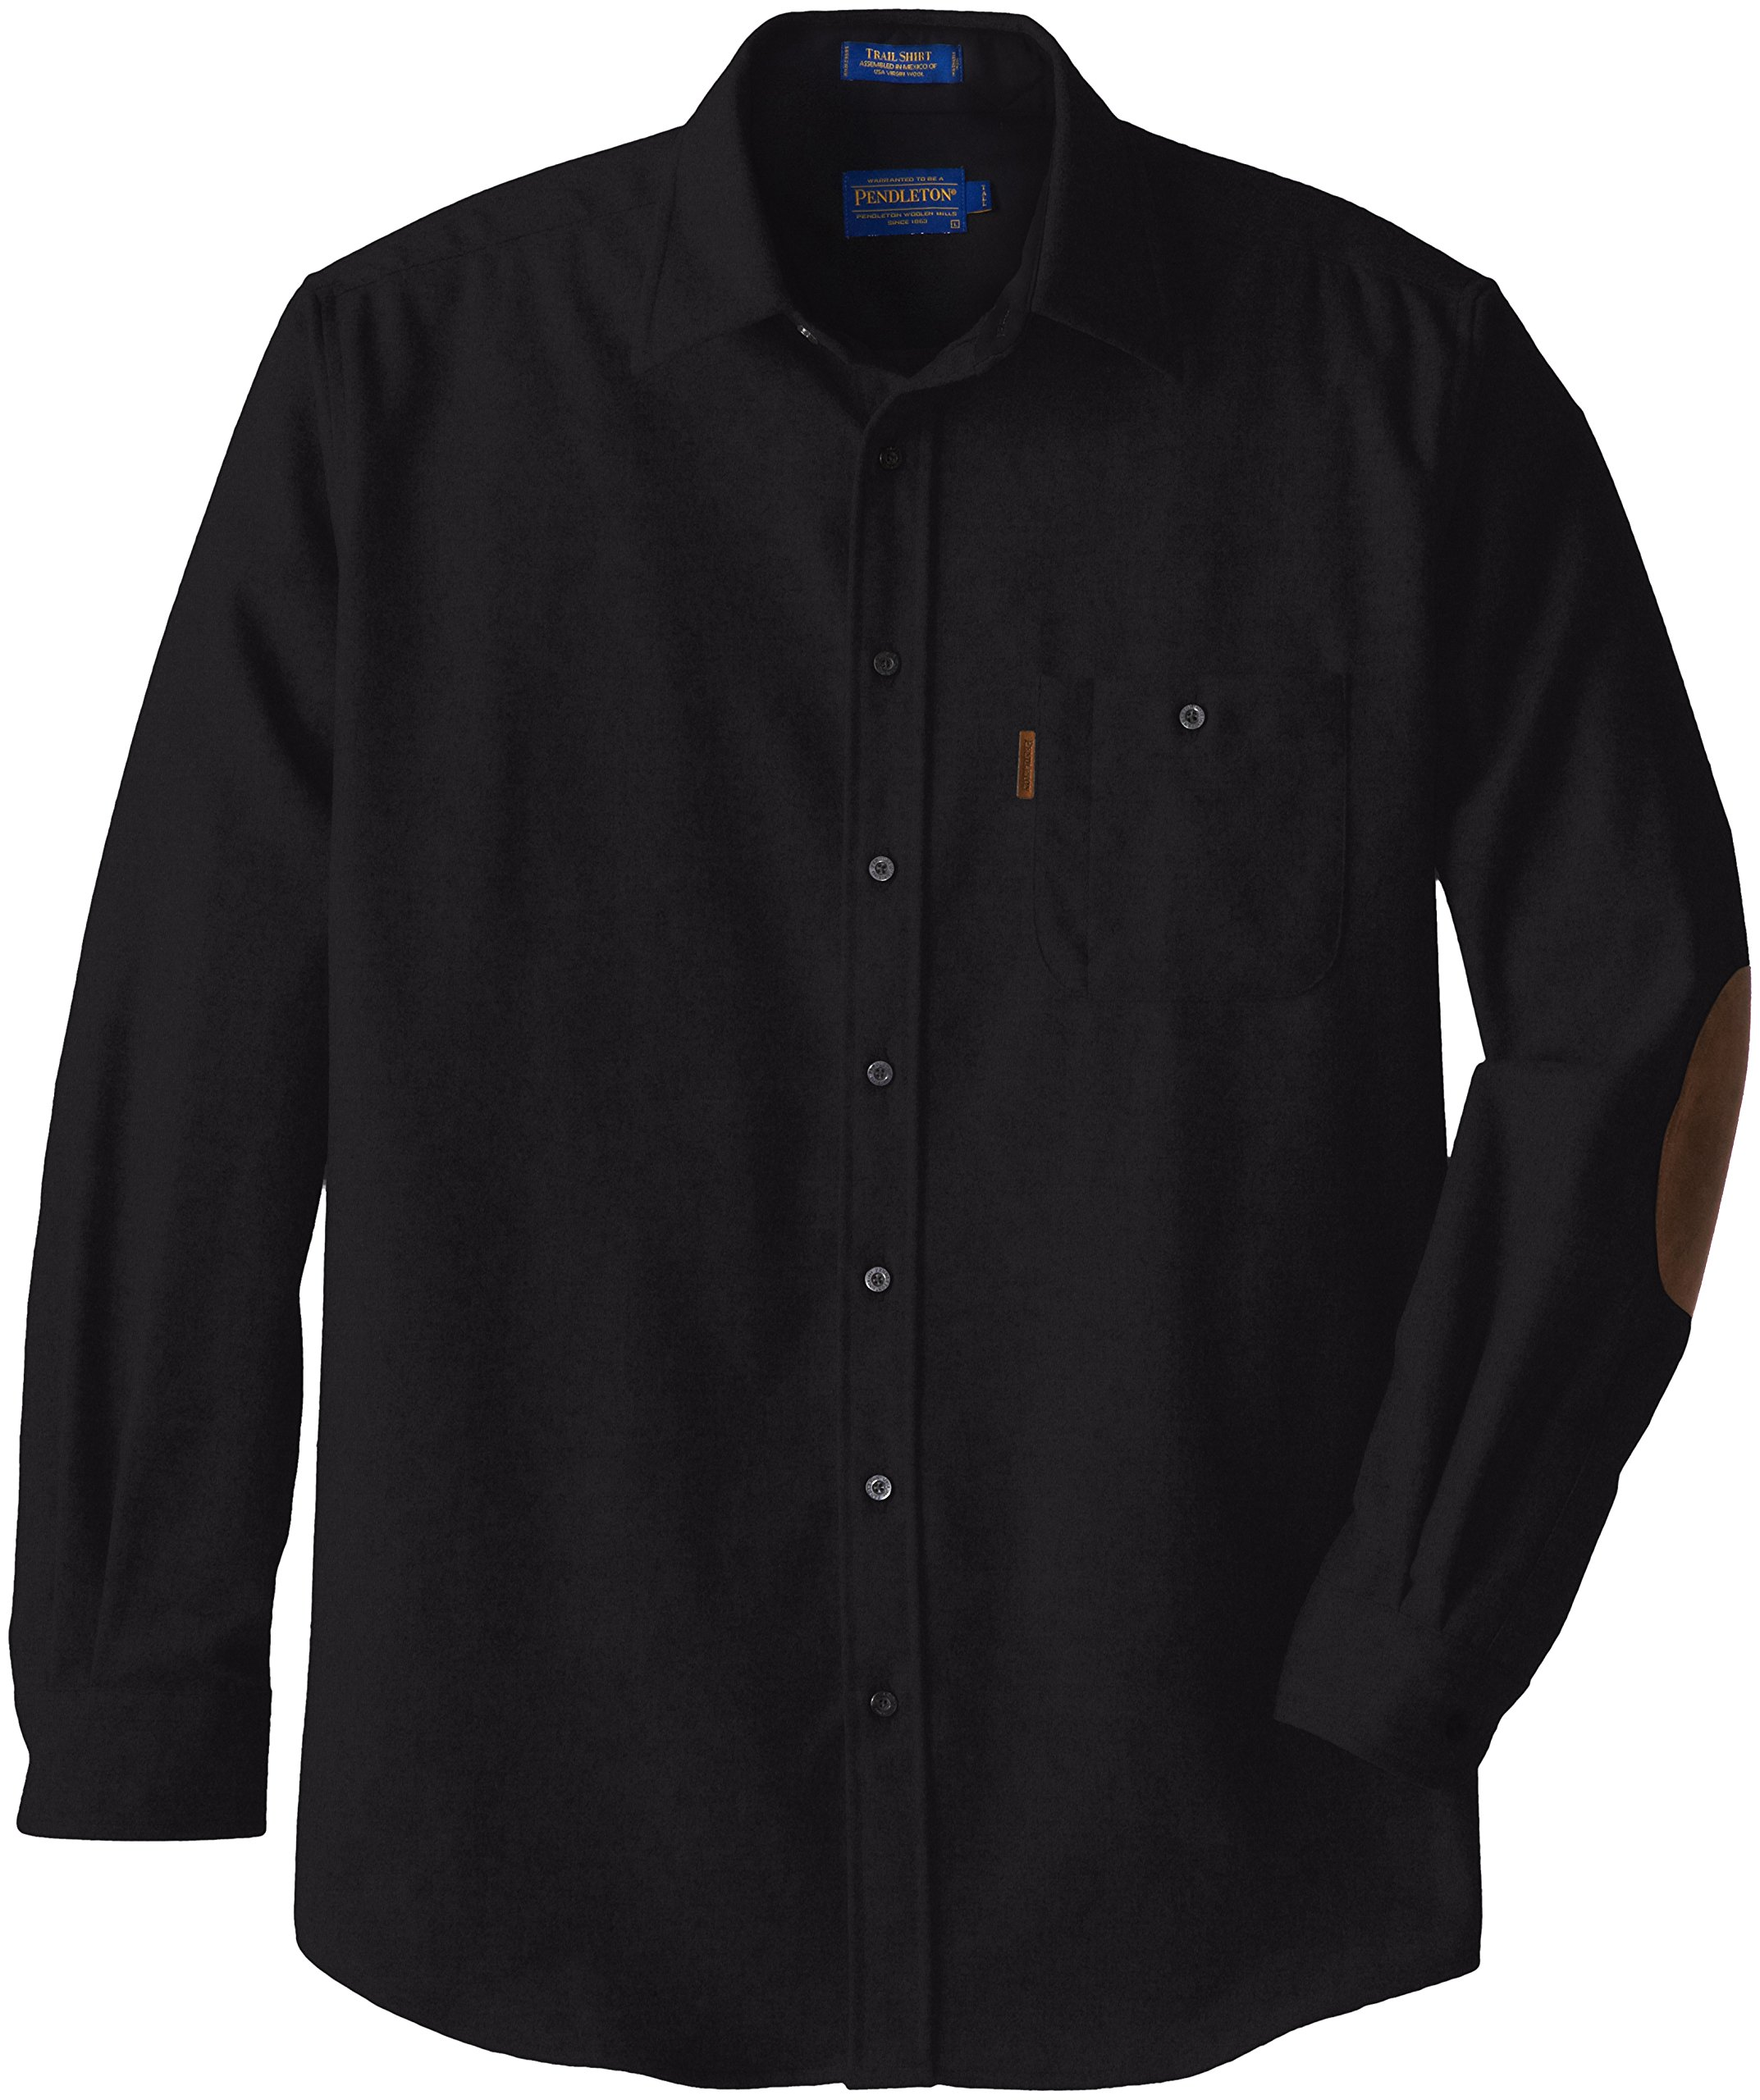 Pendleton Men's Big & Tall Long Sleeve Trail Shirt, Black, X-Large/Tall